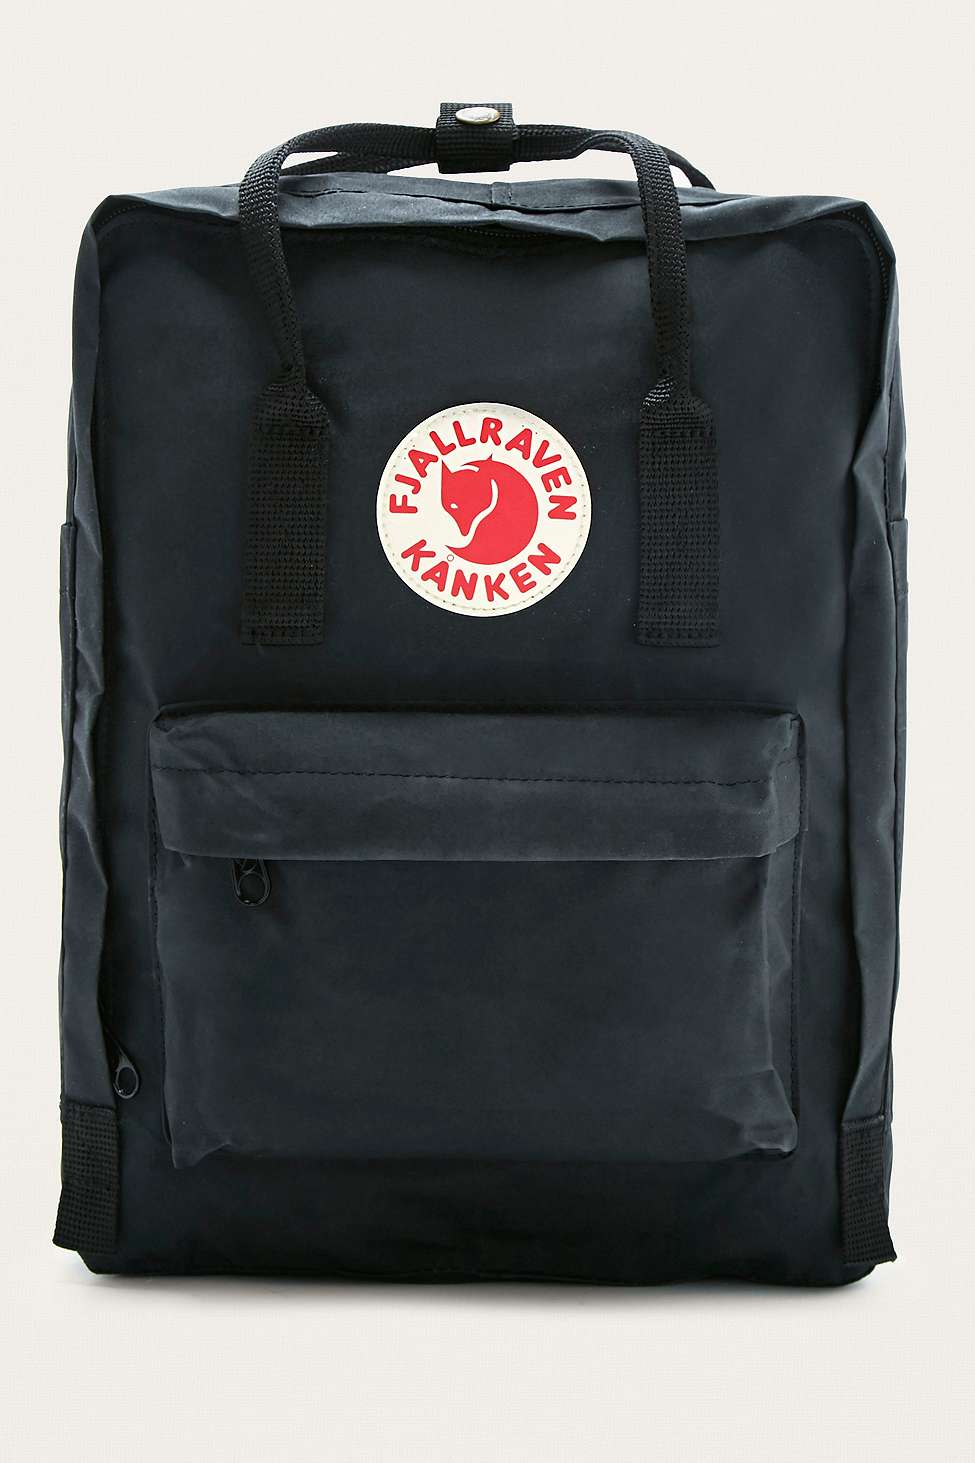 Fjallraven Kanken Classic Black Backpack | Urban Outfitters